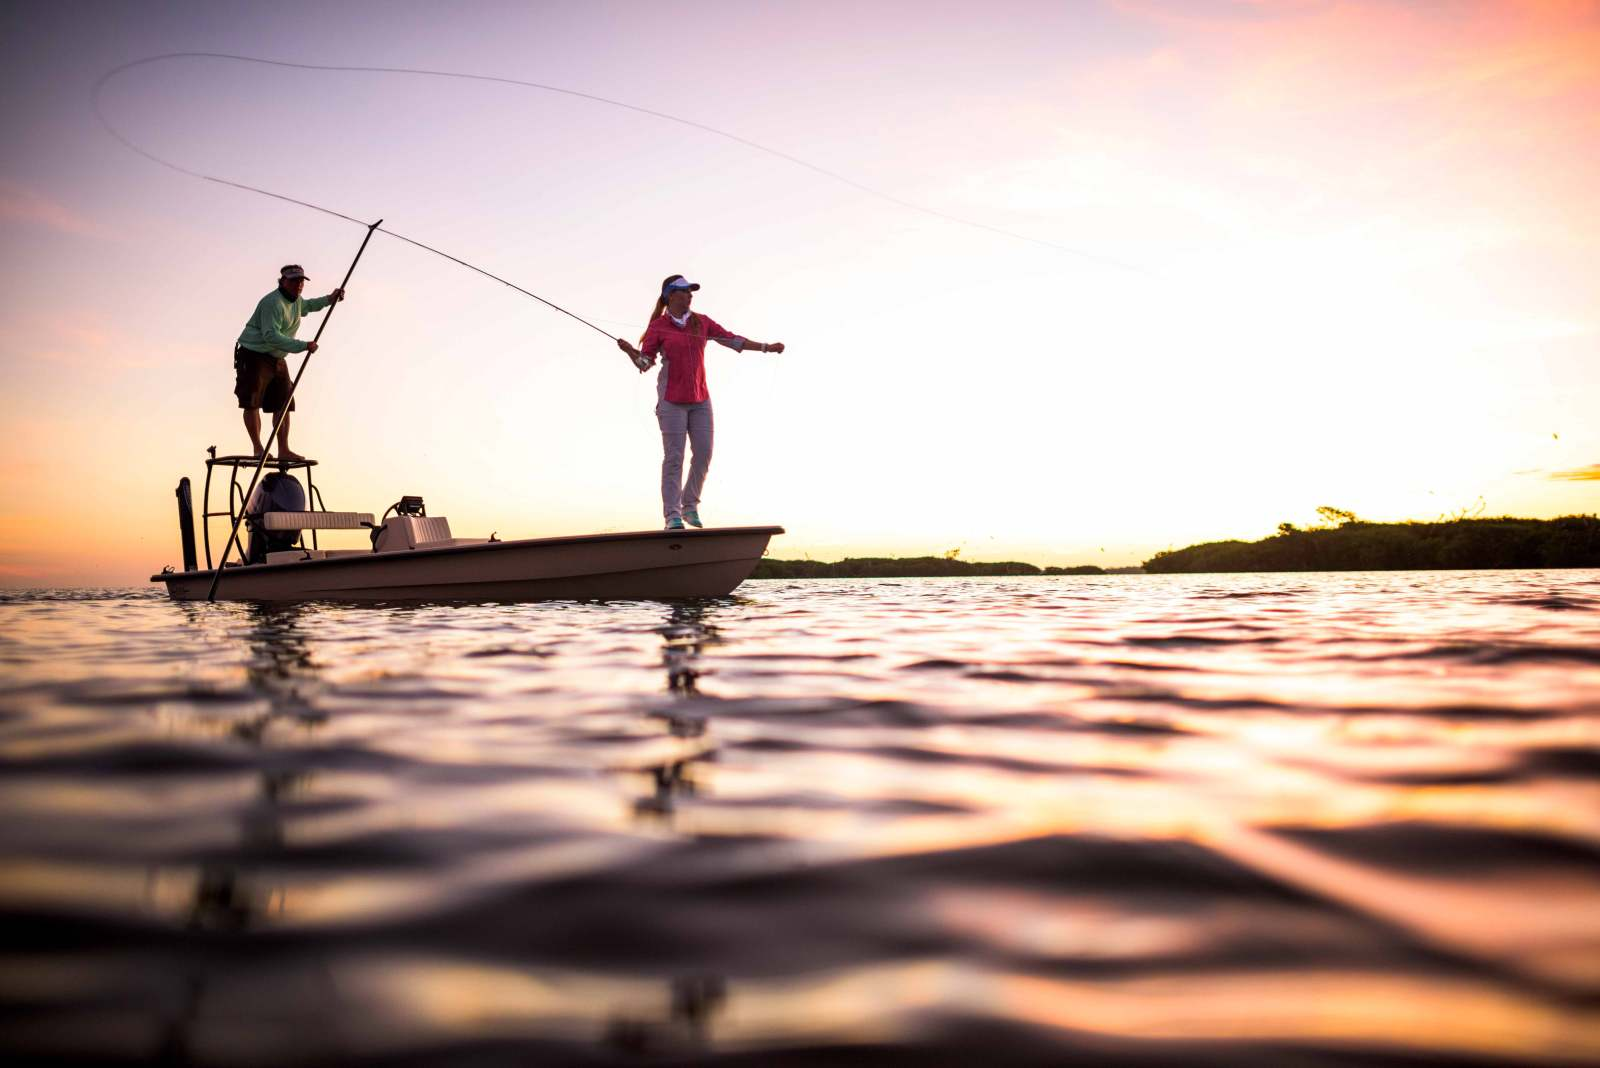 Fly fishing off the coast of southern california for Fly fishing southern california